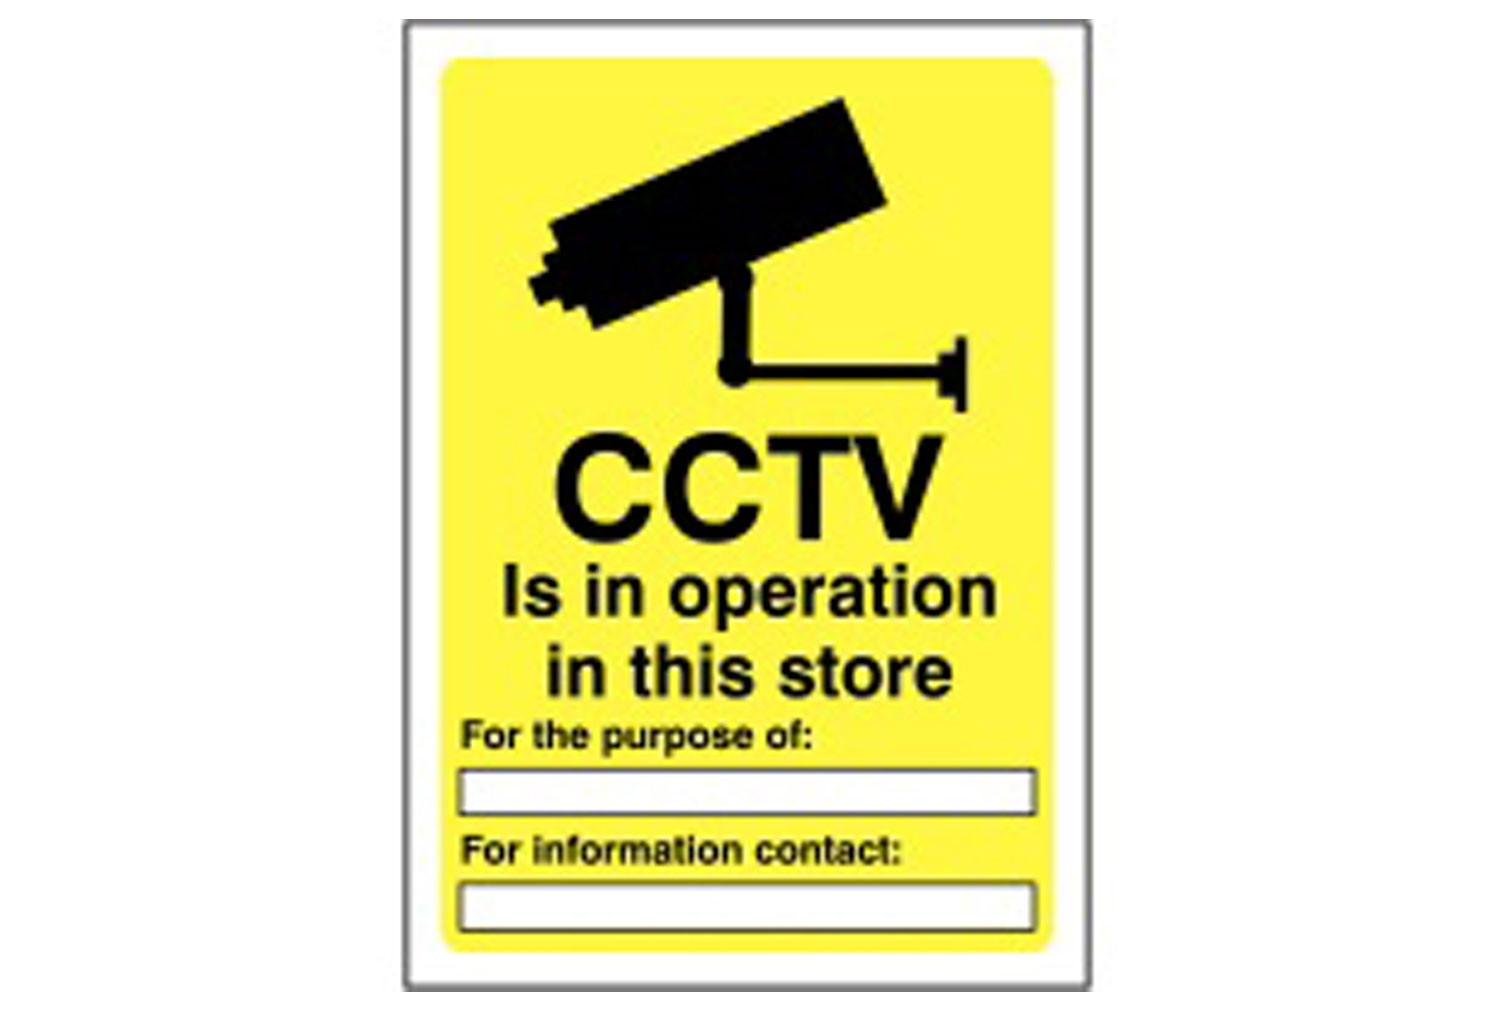 CCTV Is In Operation In This Store Information Sign